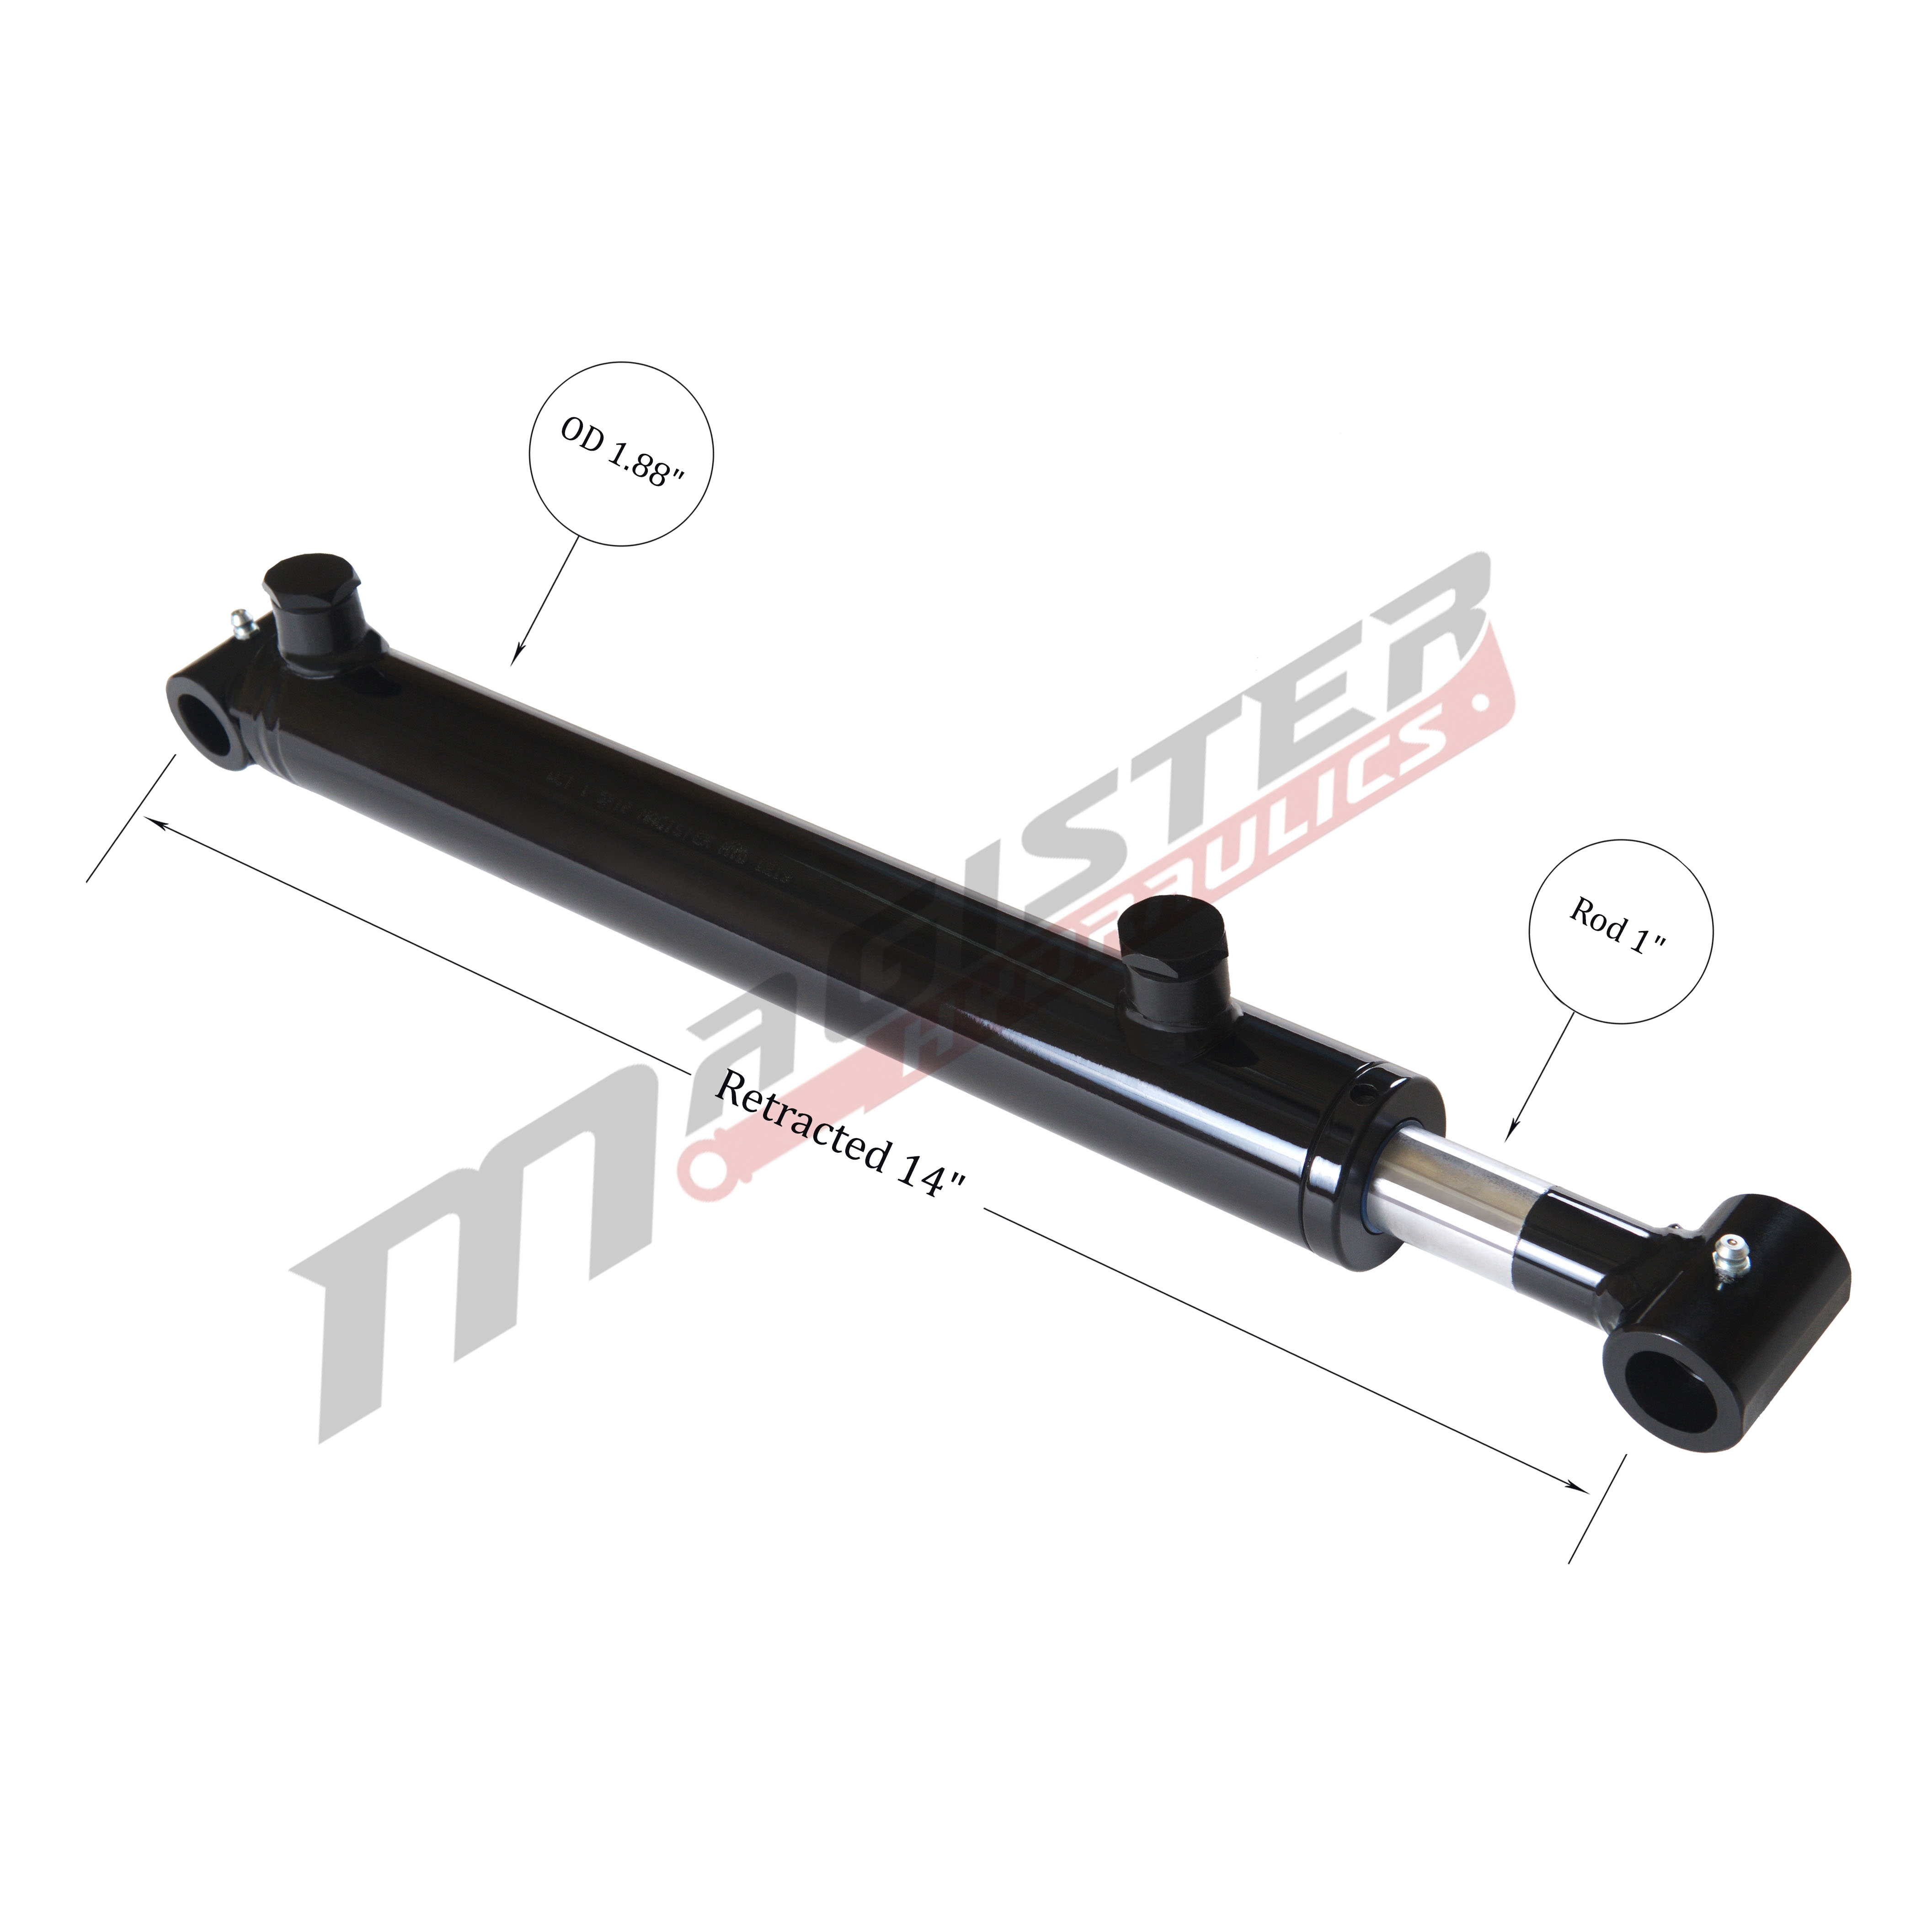 1.5 bore x 6 stroke hydraulic cylinder, welded cross tube double acting cylinder | Magister Hydraulics